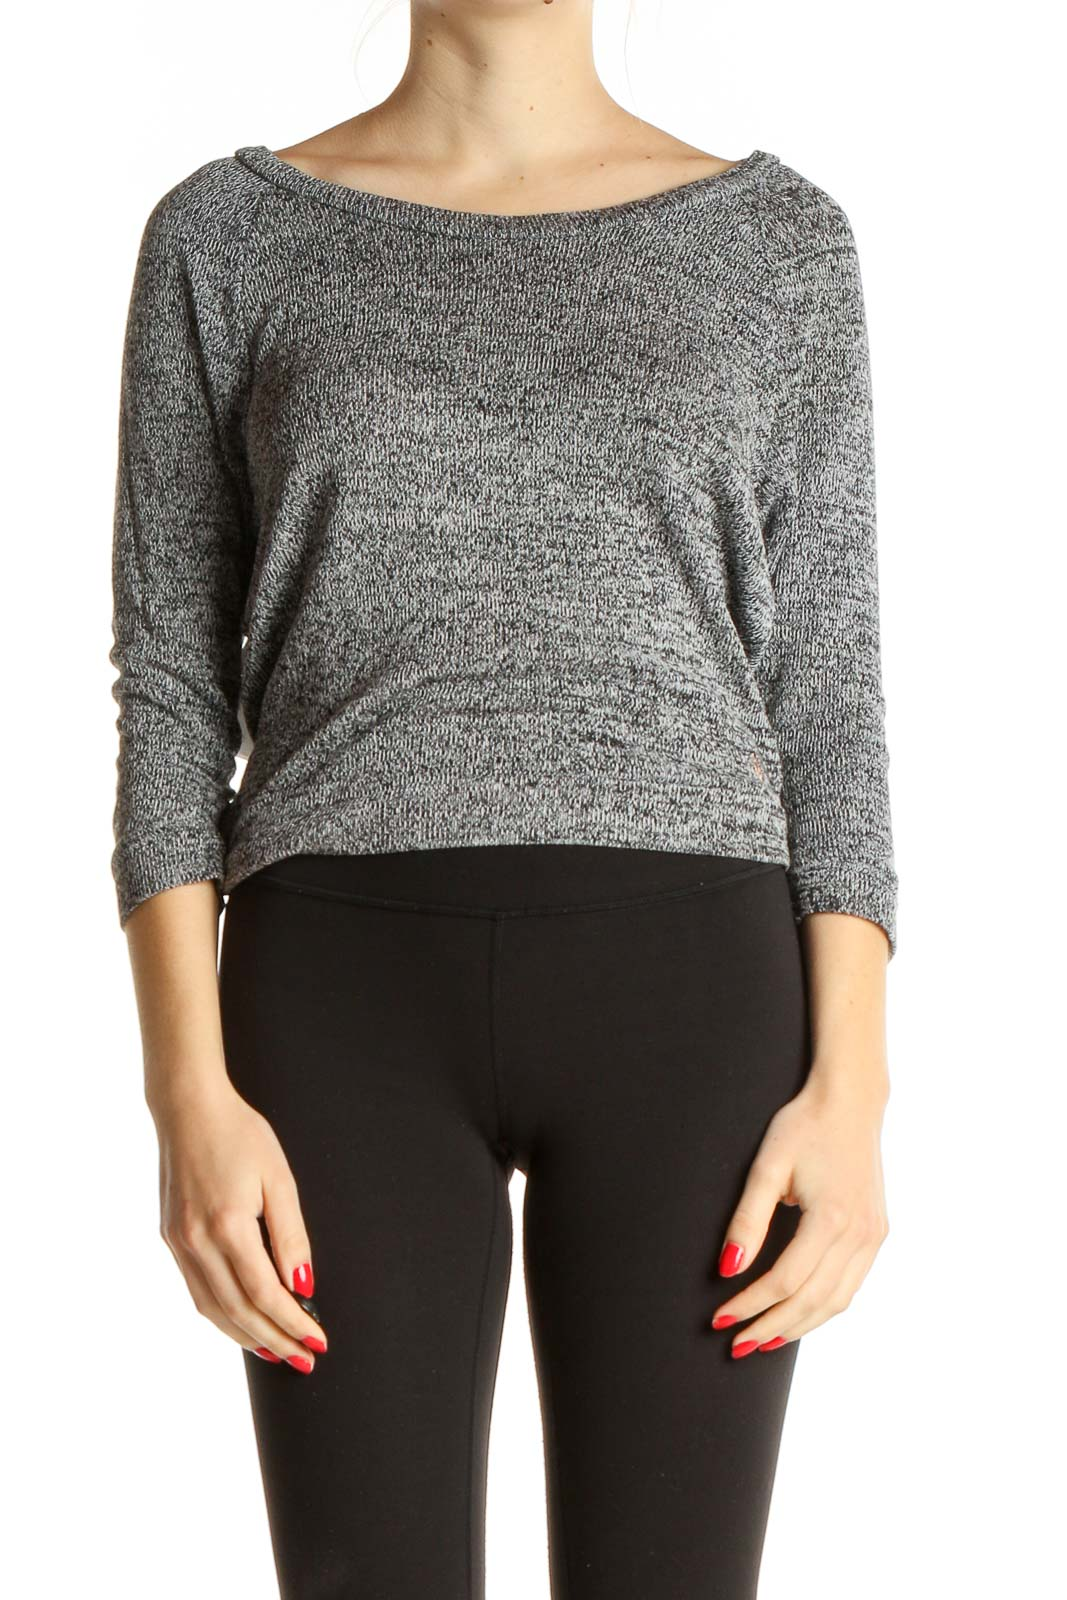 Gray Textured All Day Wear Top Front